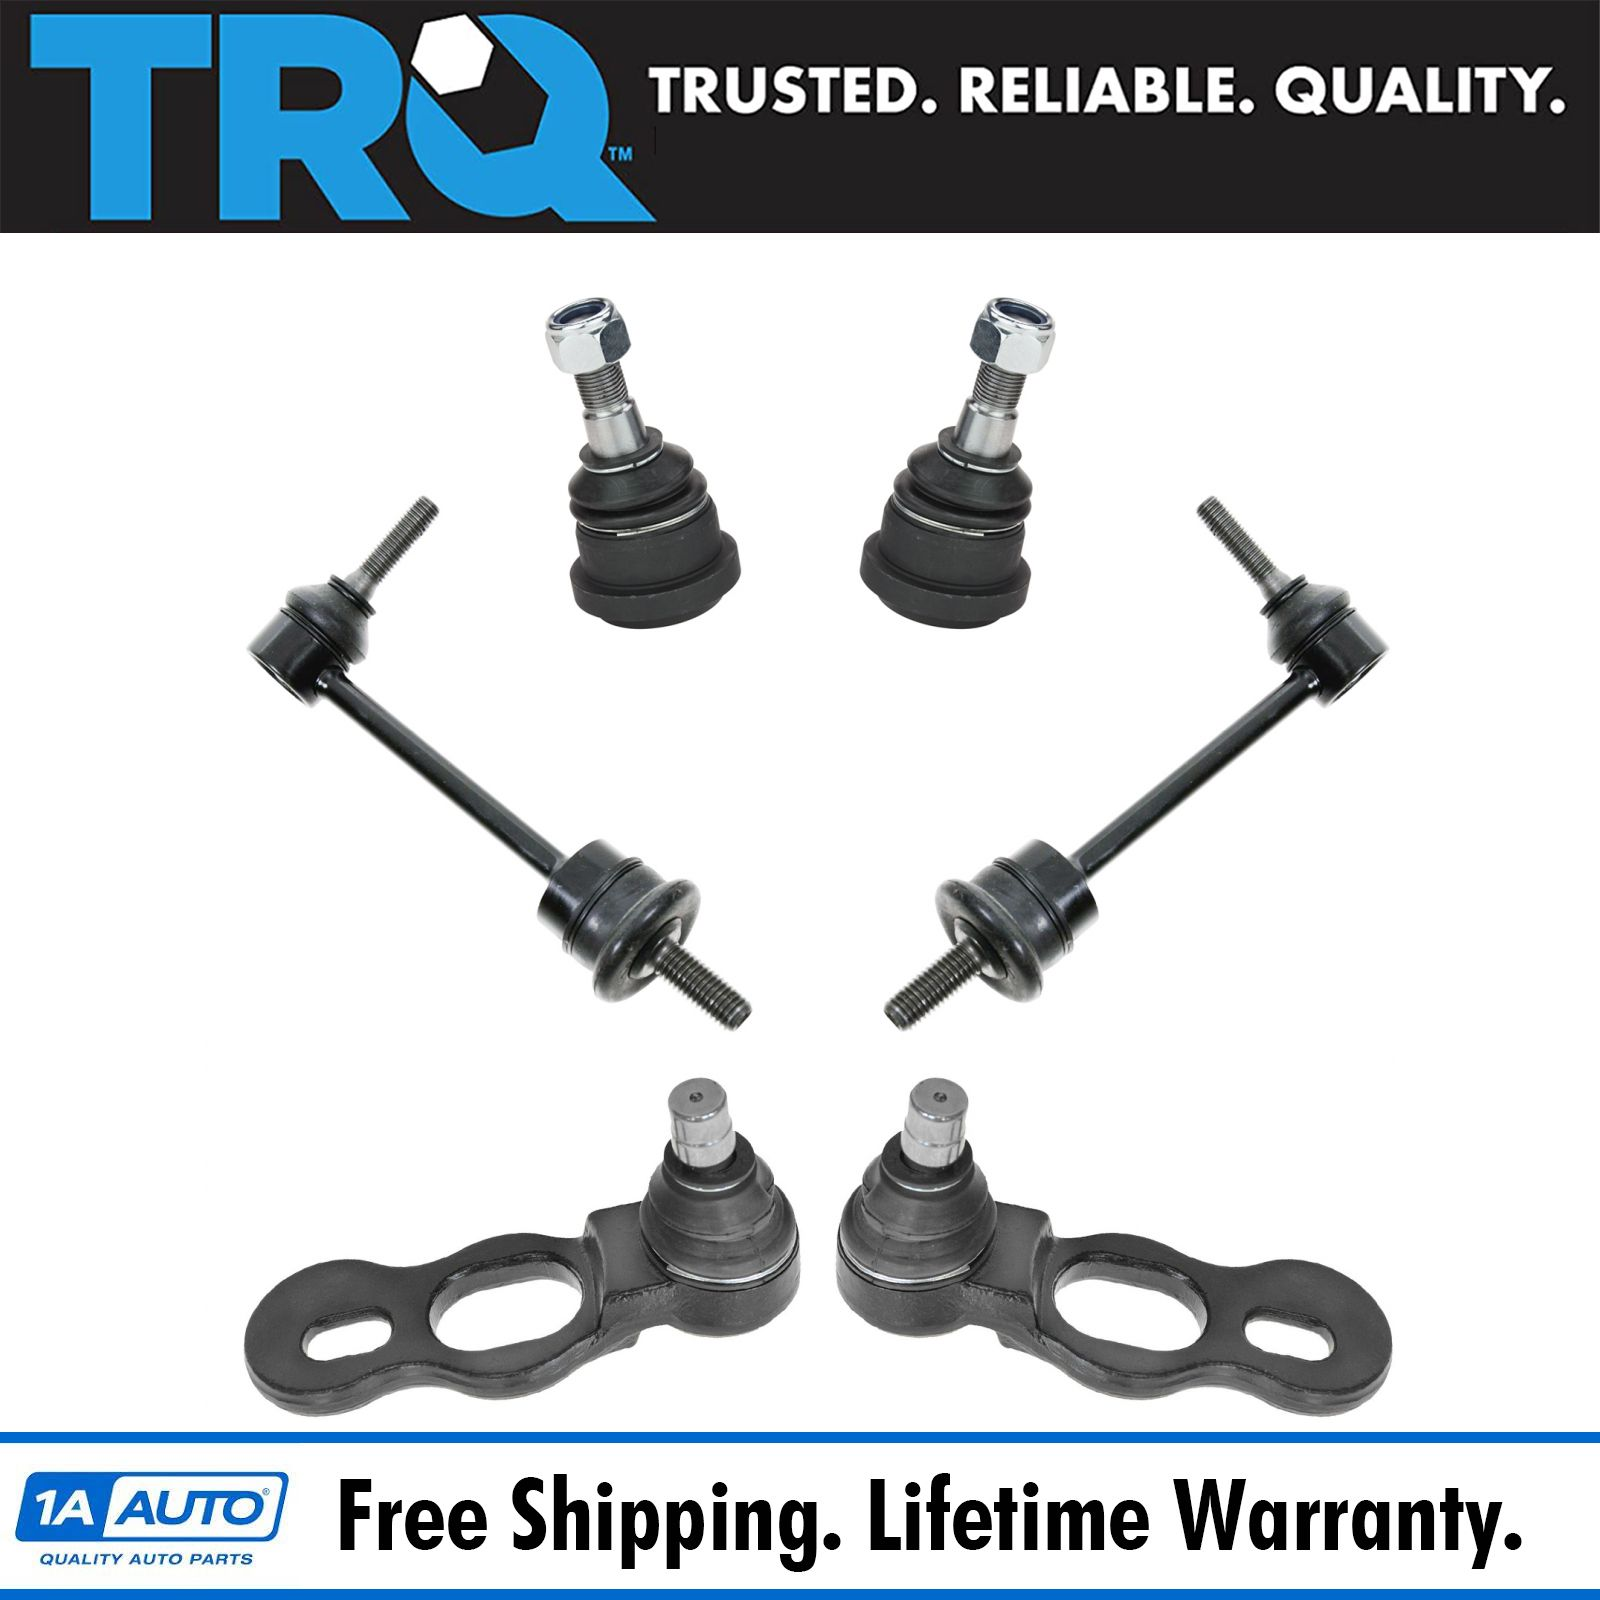 Details about Ball Joint Sway Bar Front Upper Lower Link Kit Set for Crown  Victoria Town Car